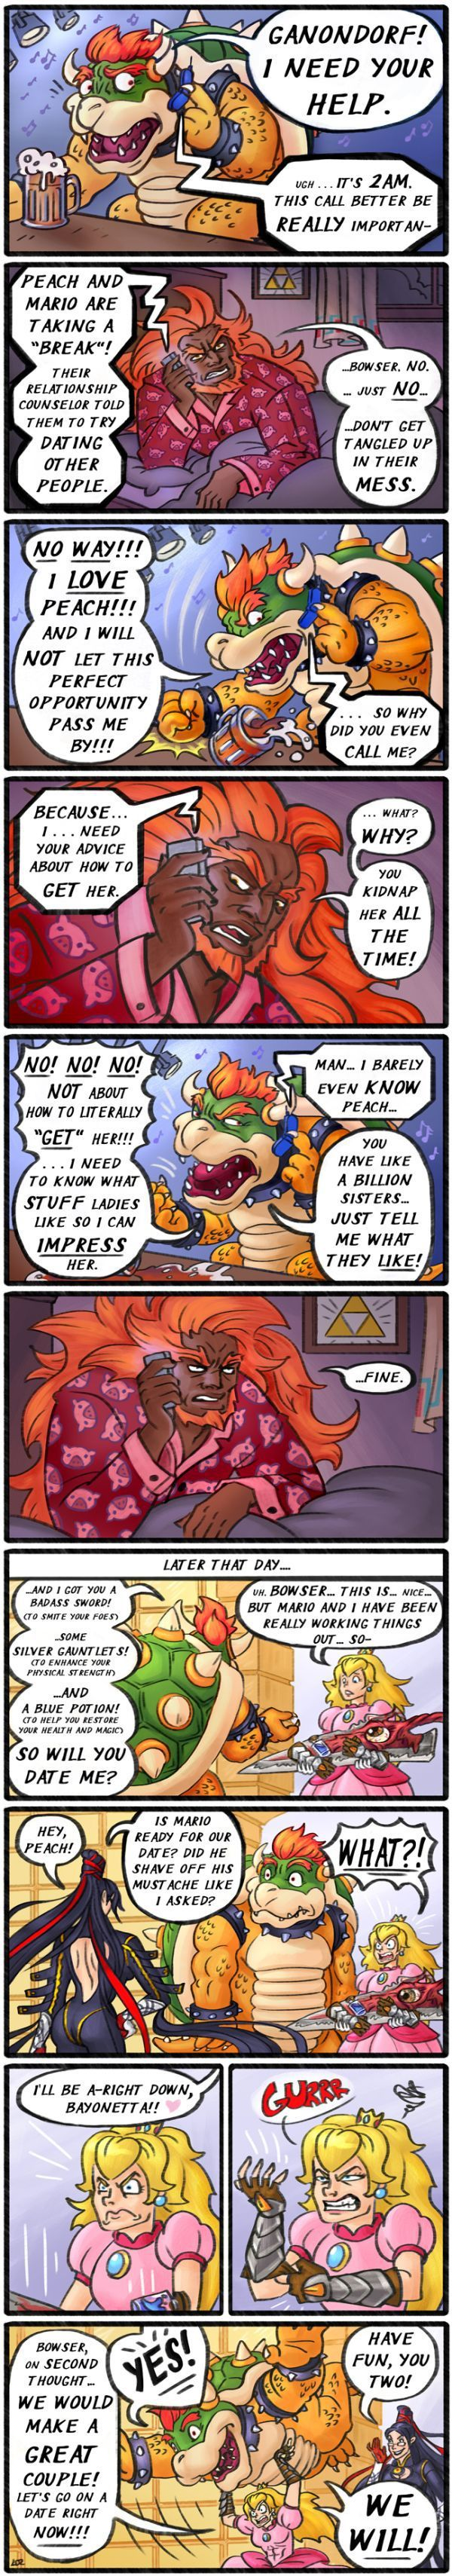 Bowser Calls Ganondorf for Help About Dating Princess Peach [Comic]  Read more at https://www.geeksaresexy.net/2016/06/12/bowser-calls-ganondorf-for-help-about-dating-princess-peach-comic/#u40ih94XbbdiJrcz.99